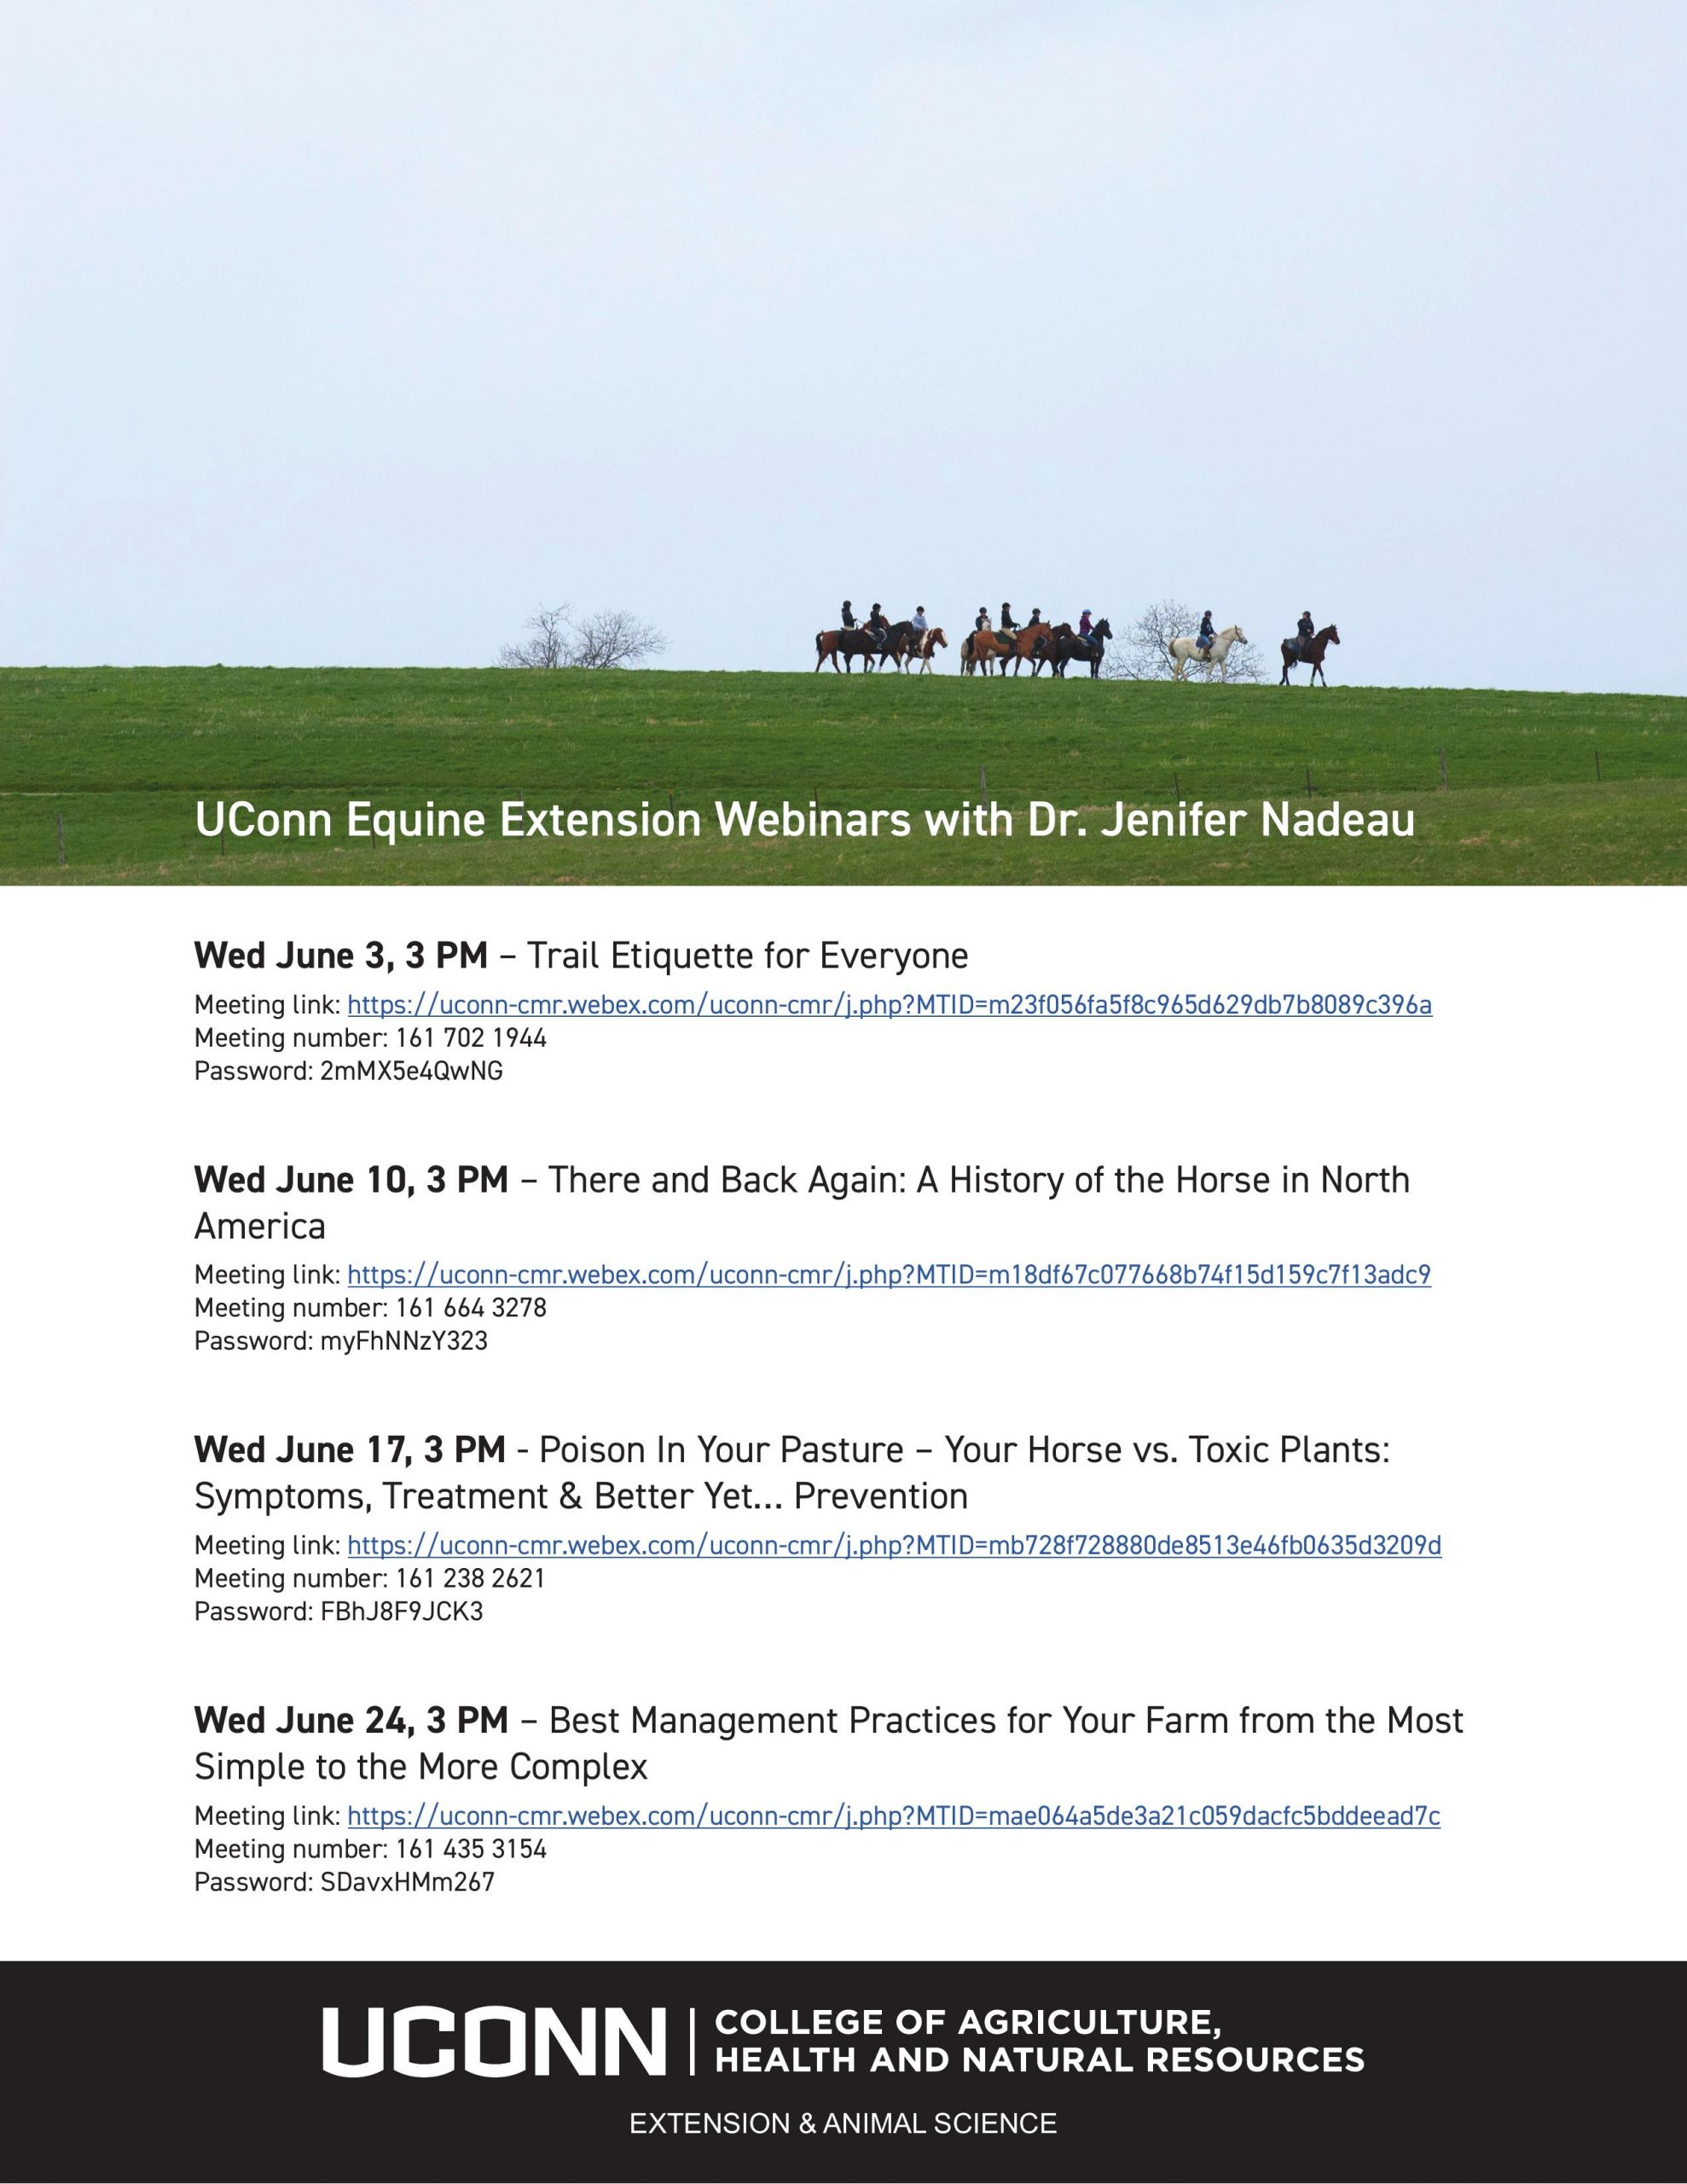 horse riders and UConn Equine Extension Webinar series information